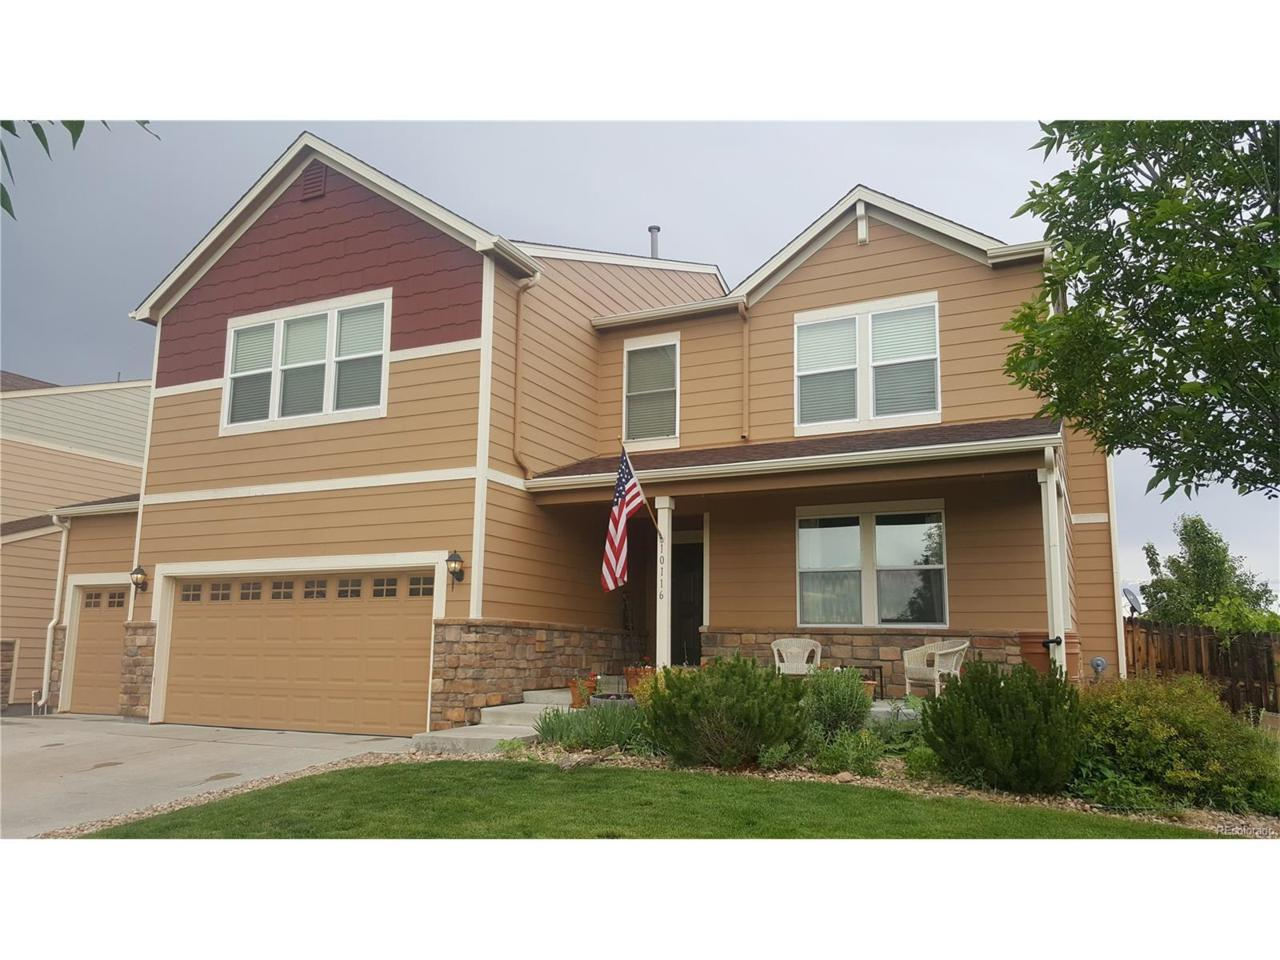 10116 Fraser Street, Commerce City, CO 80022 (MLS #4617380) :: 8z Real Estate